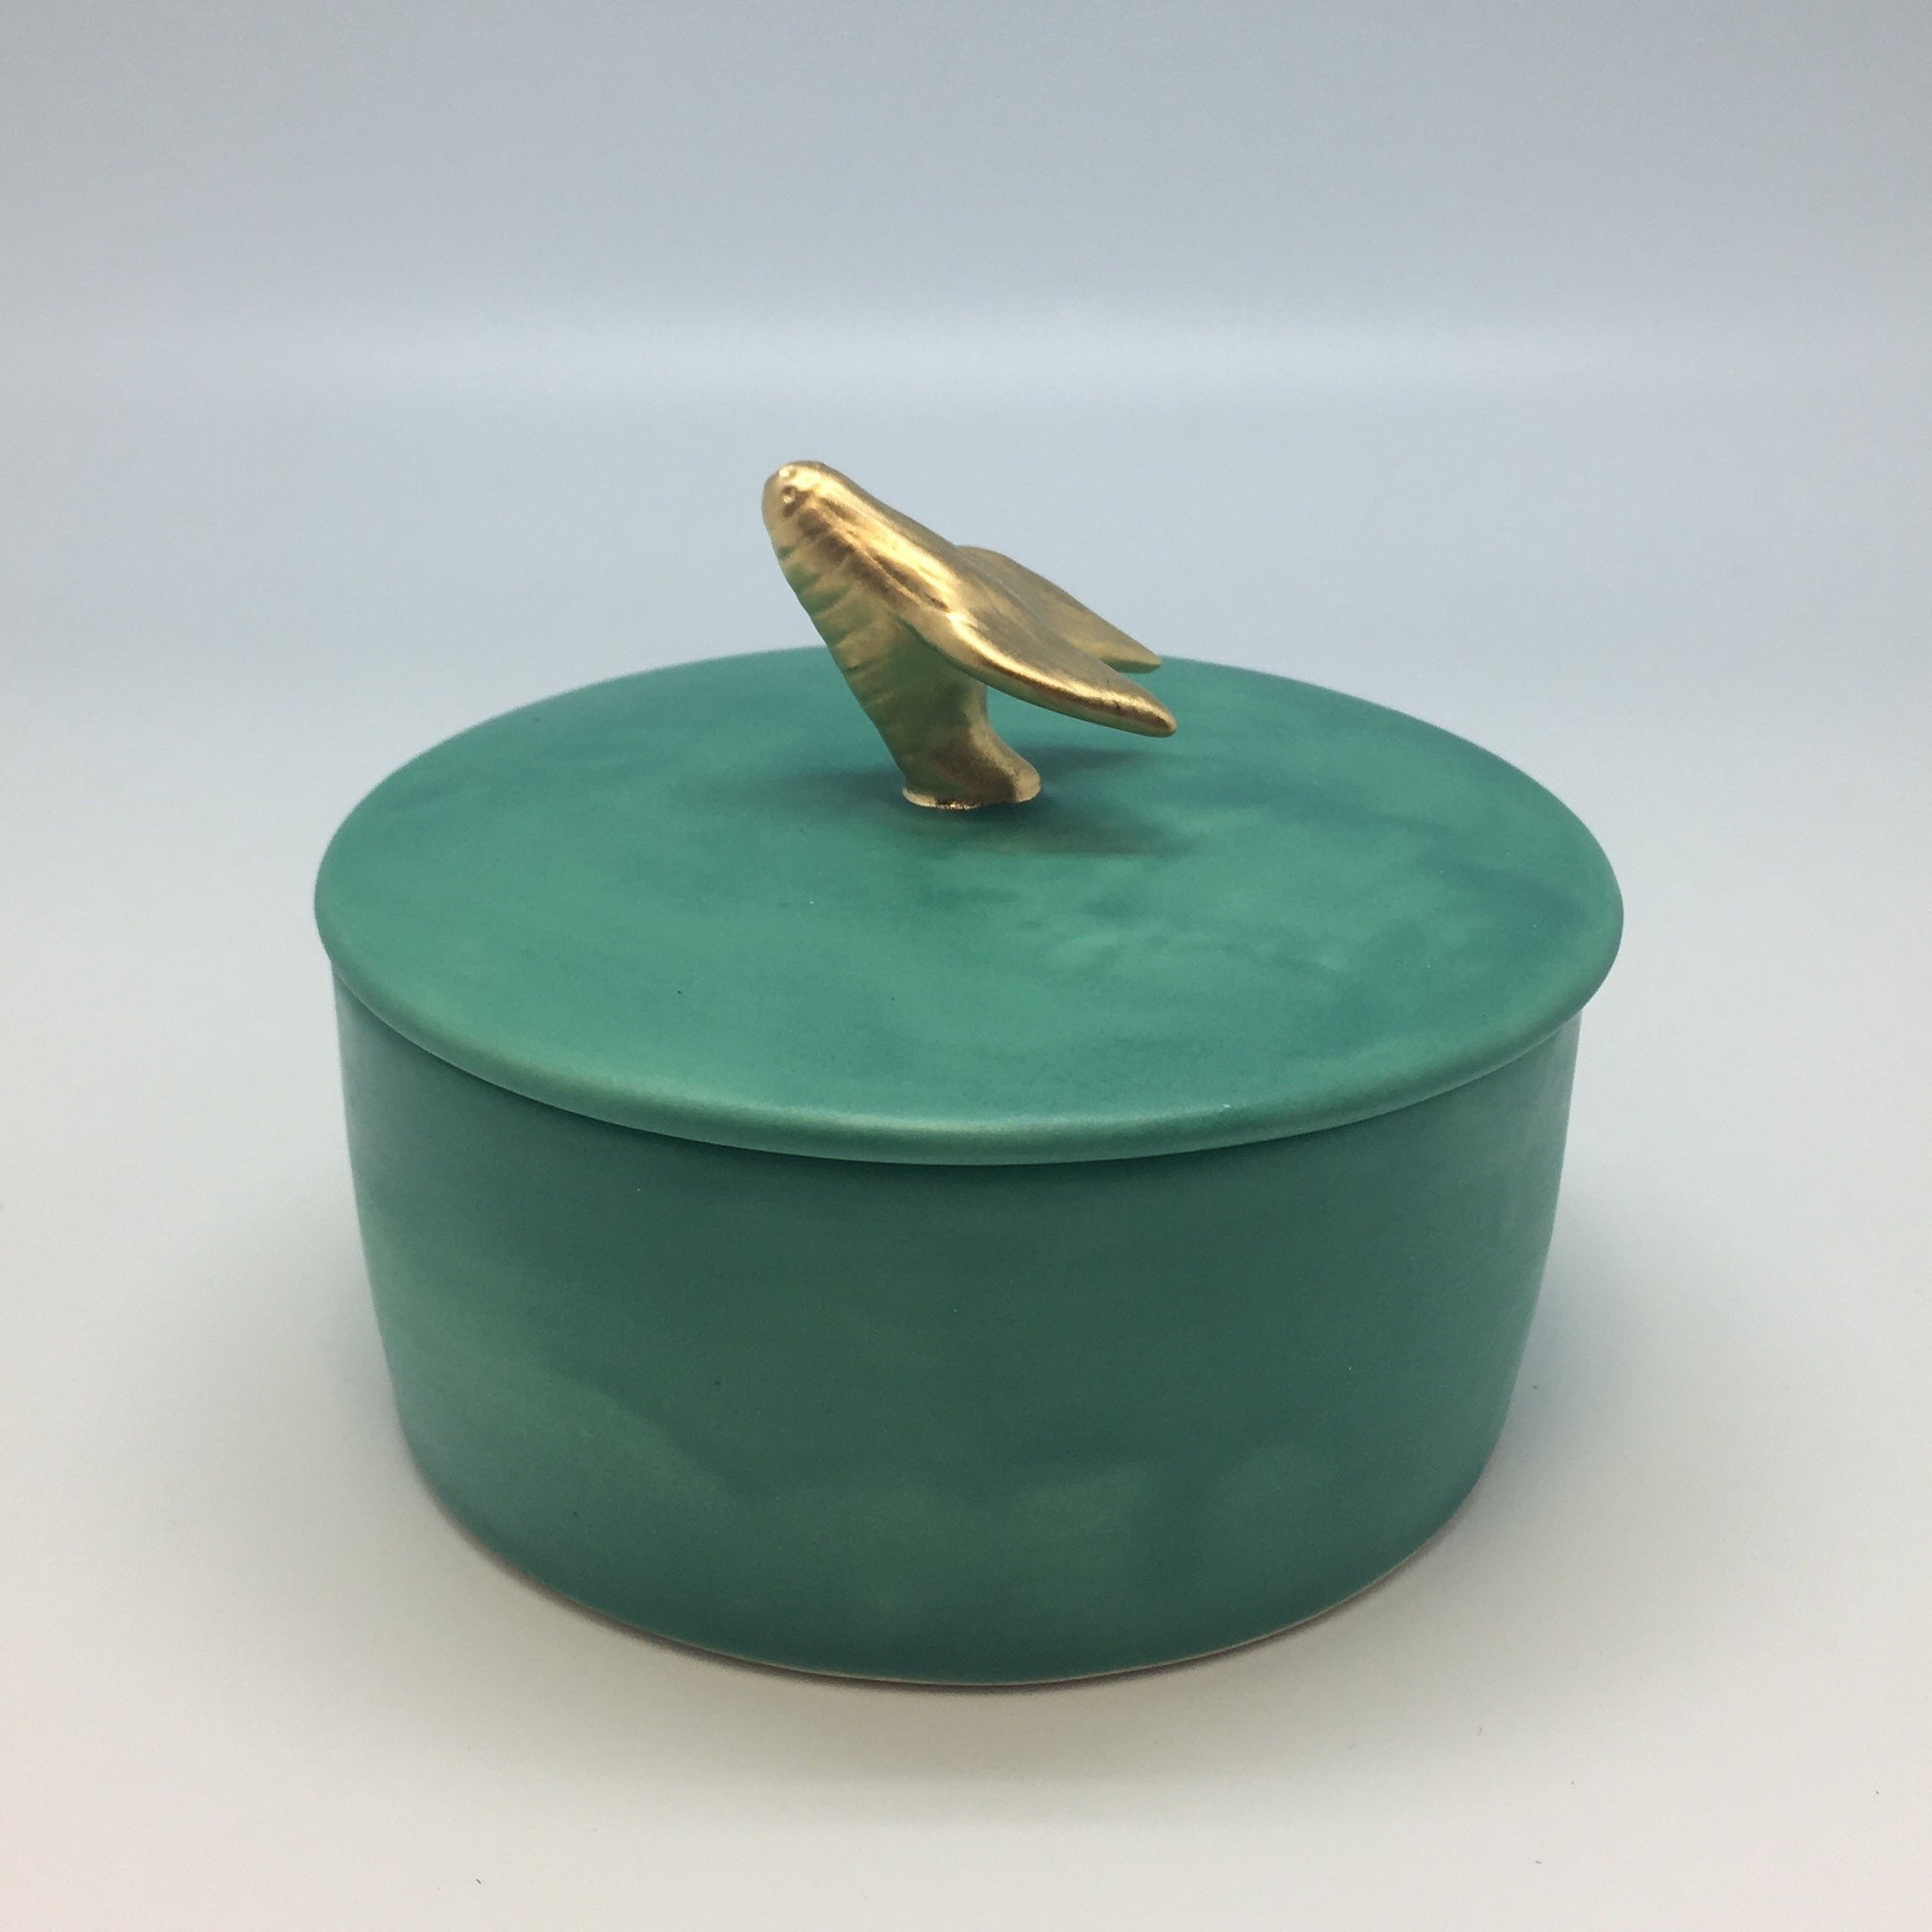 Emerald green jewlery box with a golden bug